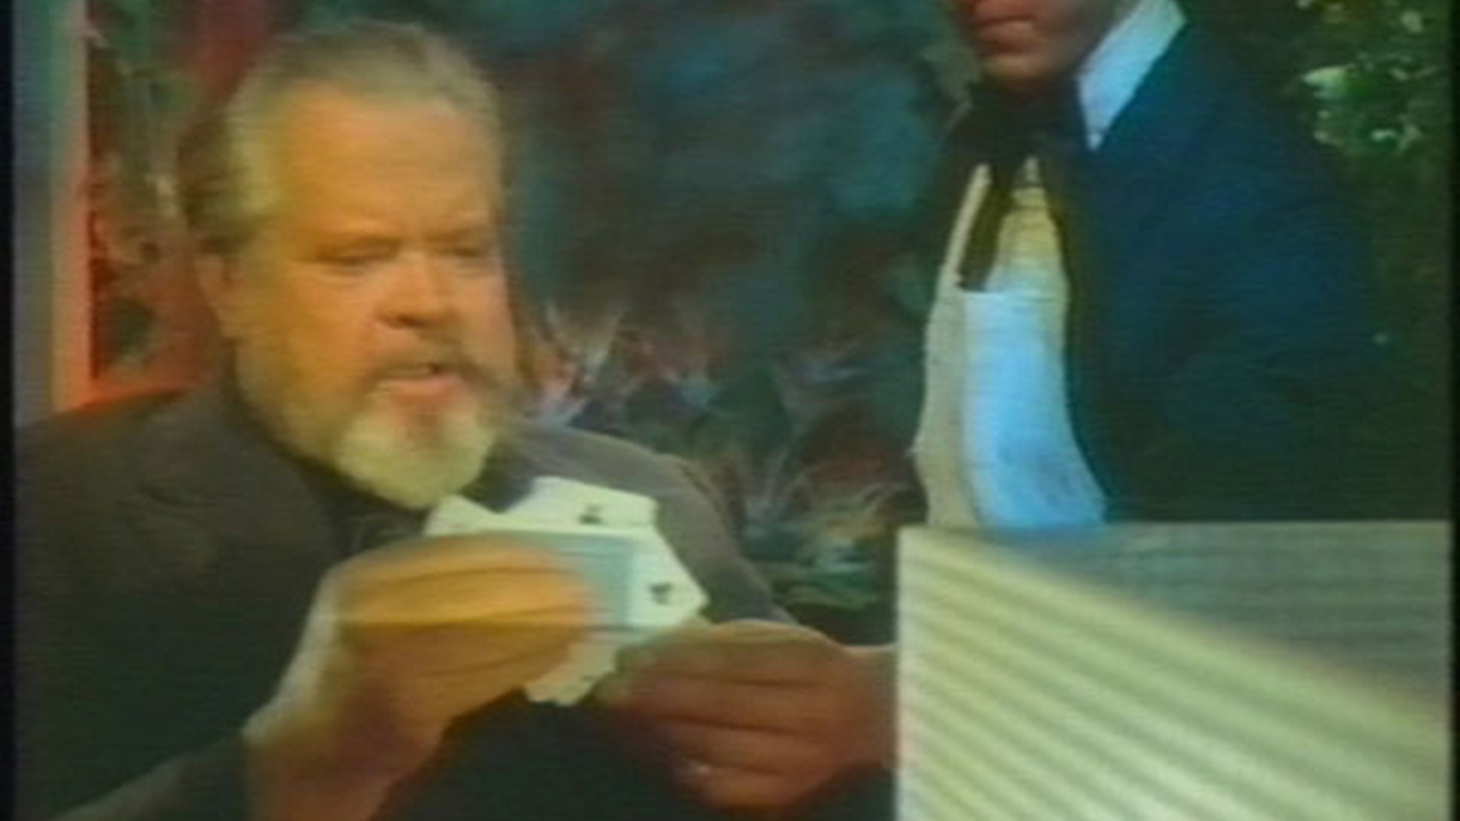 Orson Welles's final years appear dark: earning money by making the rounds on talk shows and starring in wine commercials. But his assistant at the time, Bob Kensinger, has brighter memories. Note: This episode contains explicit language.